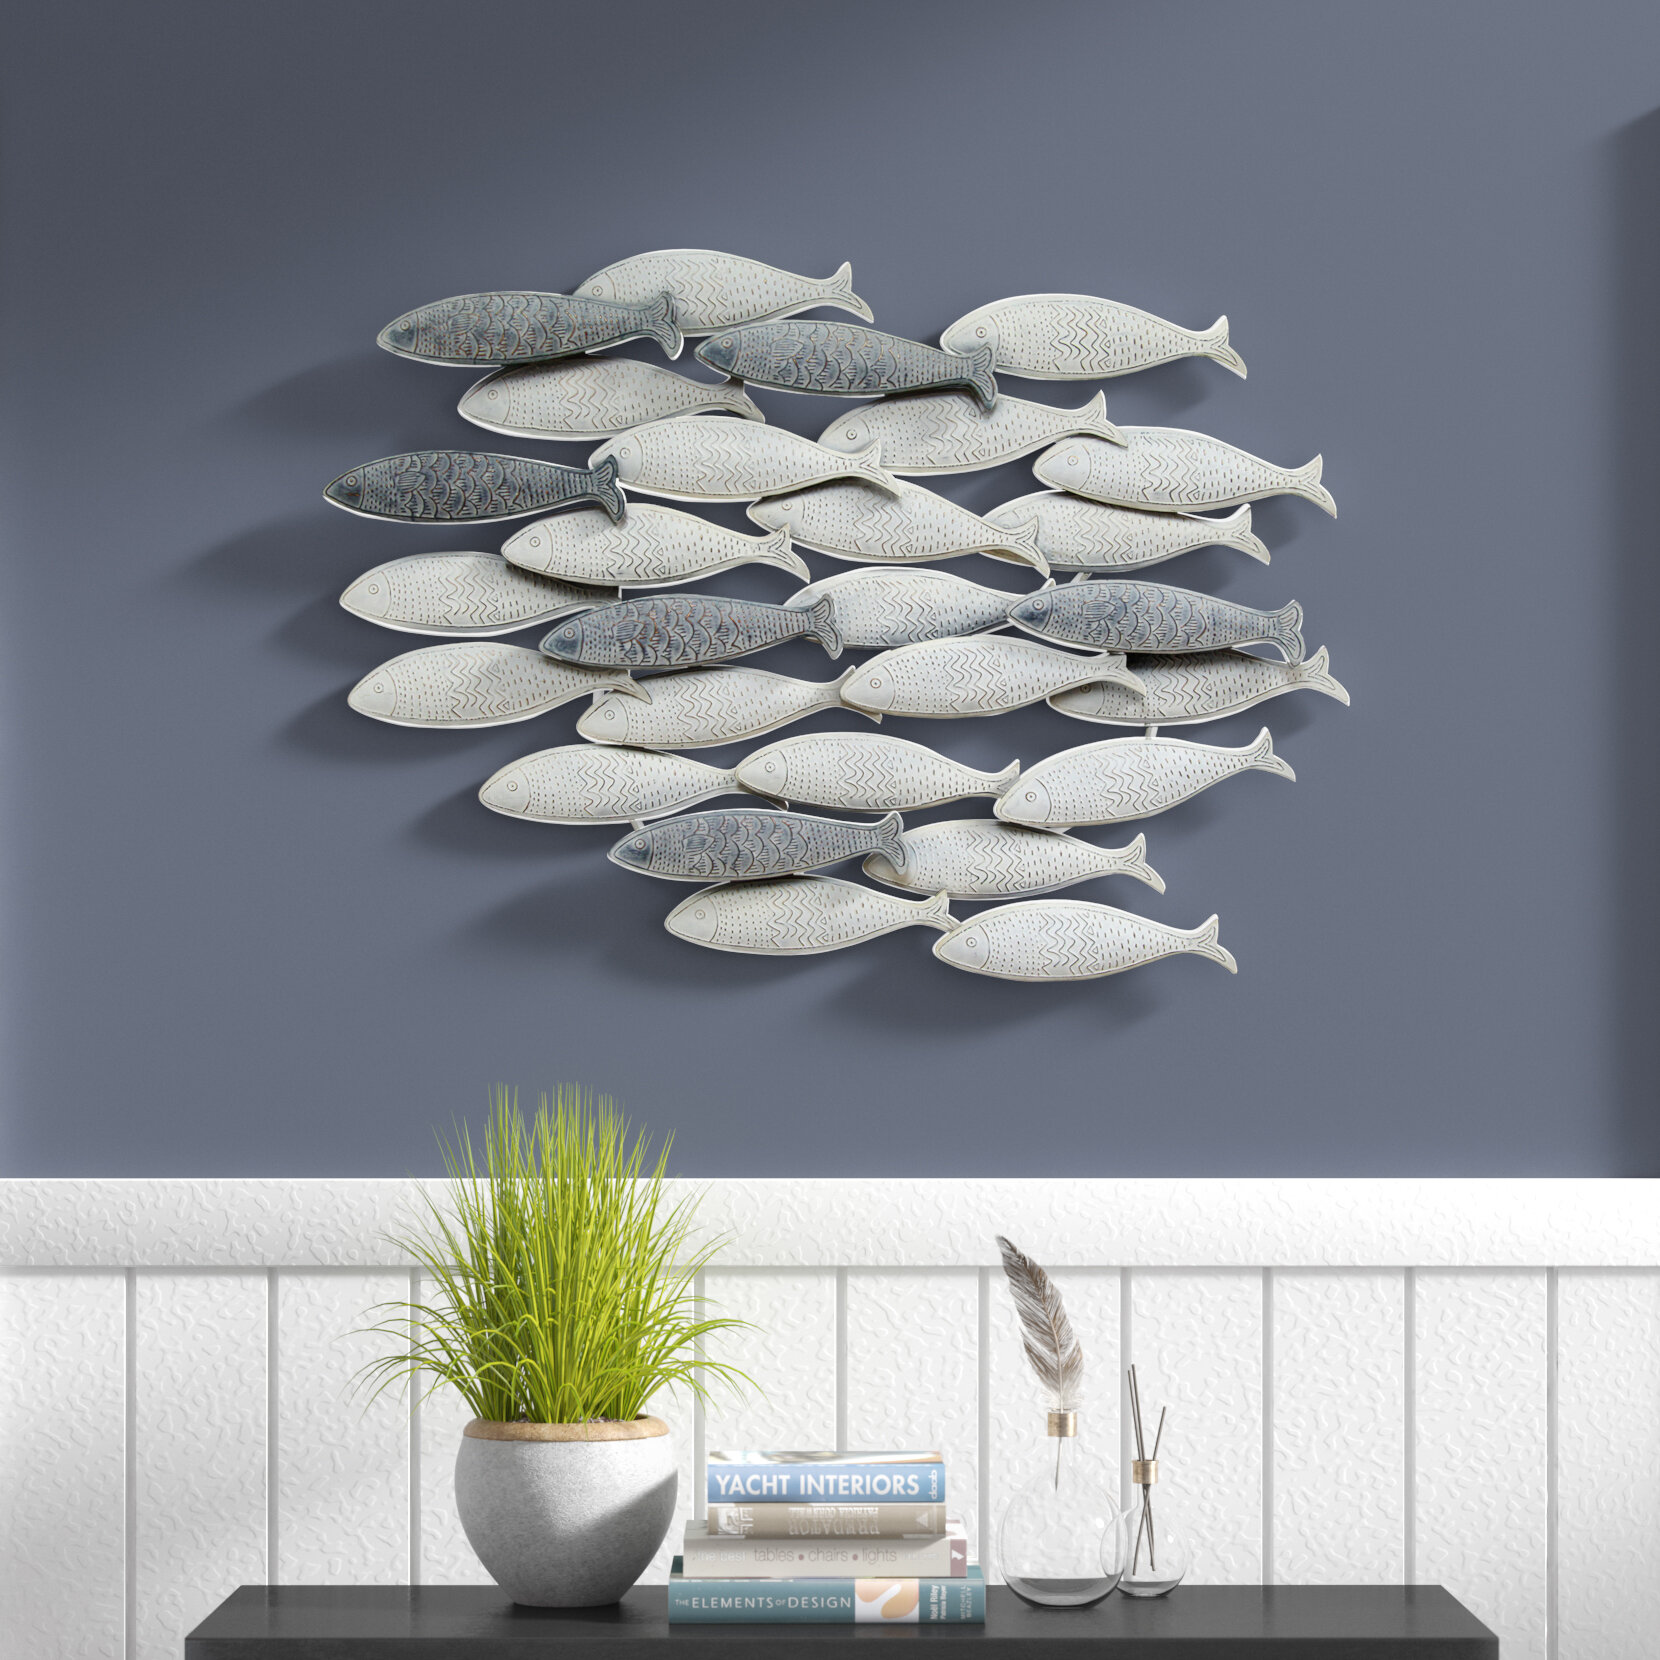 Rosecliff heights school of fish wall décor reviews wayfair